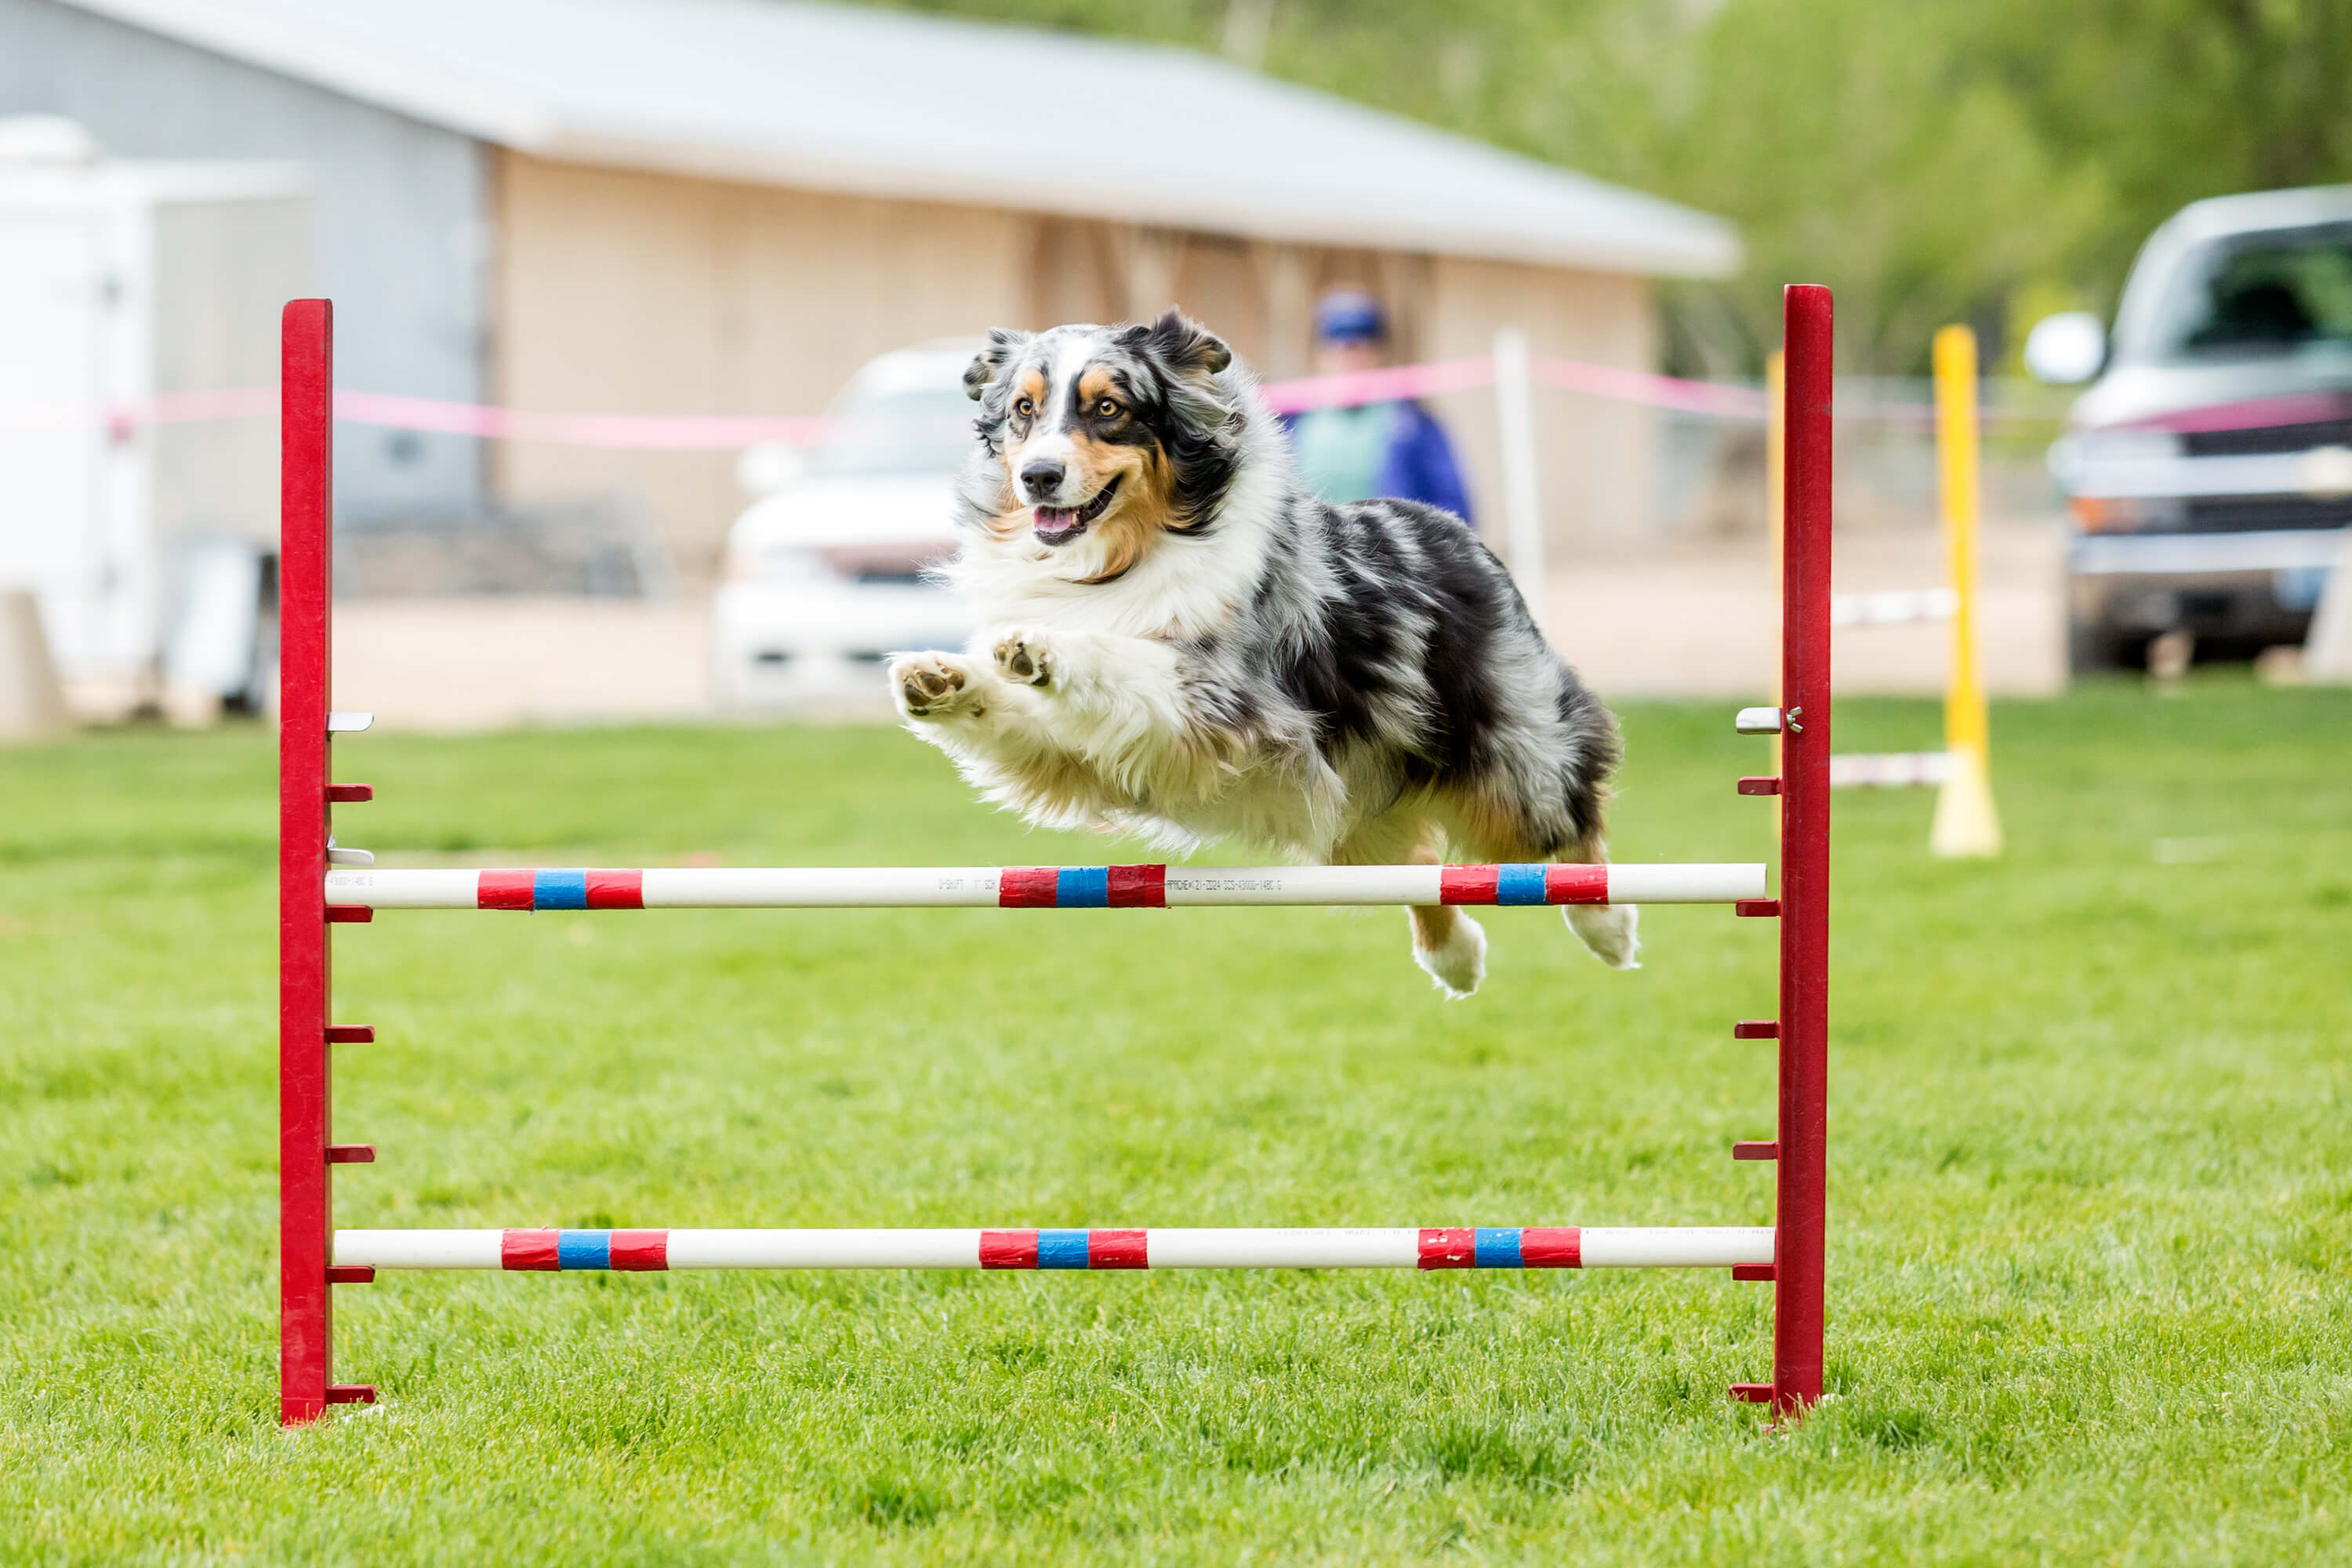 An Australian Shepherd competing in an agility course.